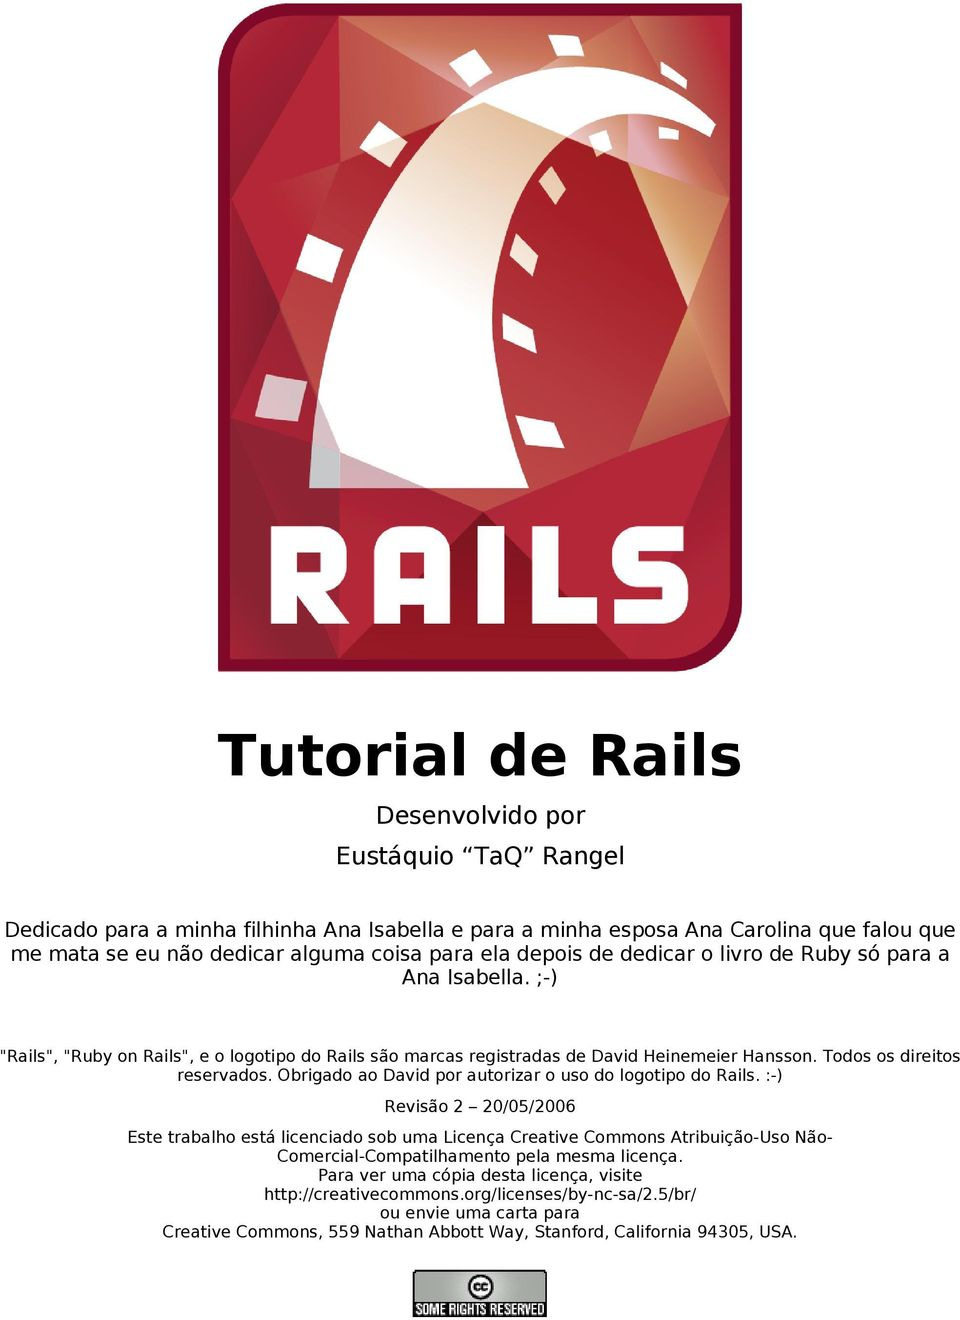 Obrigado ao David por autorizar o uso do logotipo do Rails.